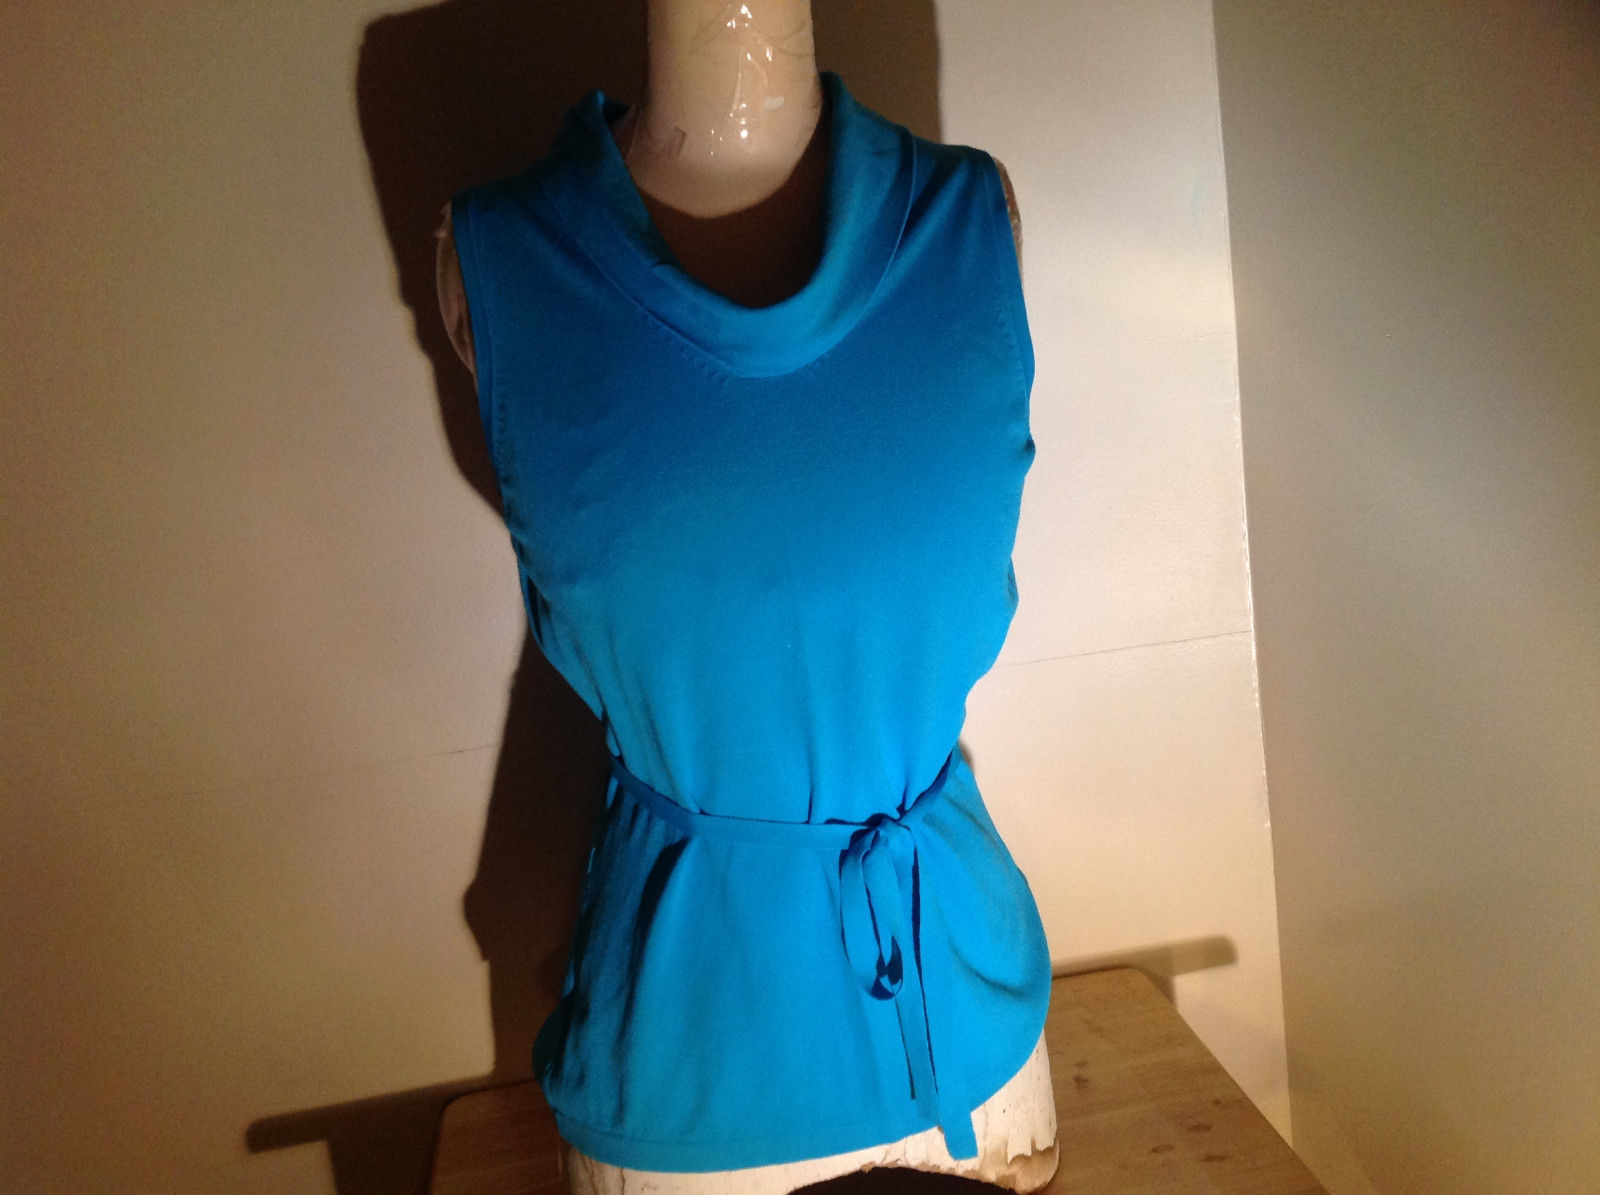 Bright Blue Sleeveless Scoop Neck Shirt by Amanda Smith Size Medium